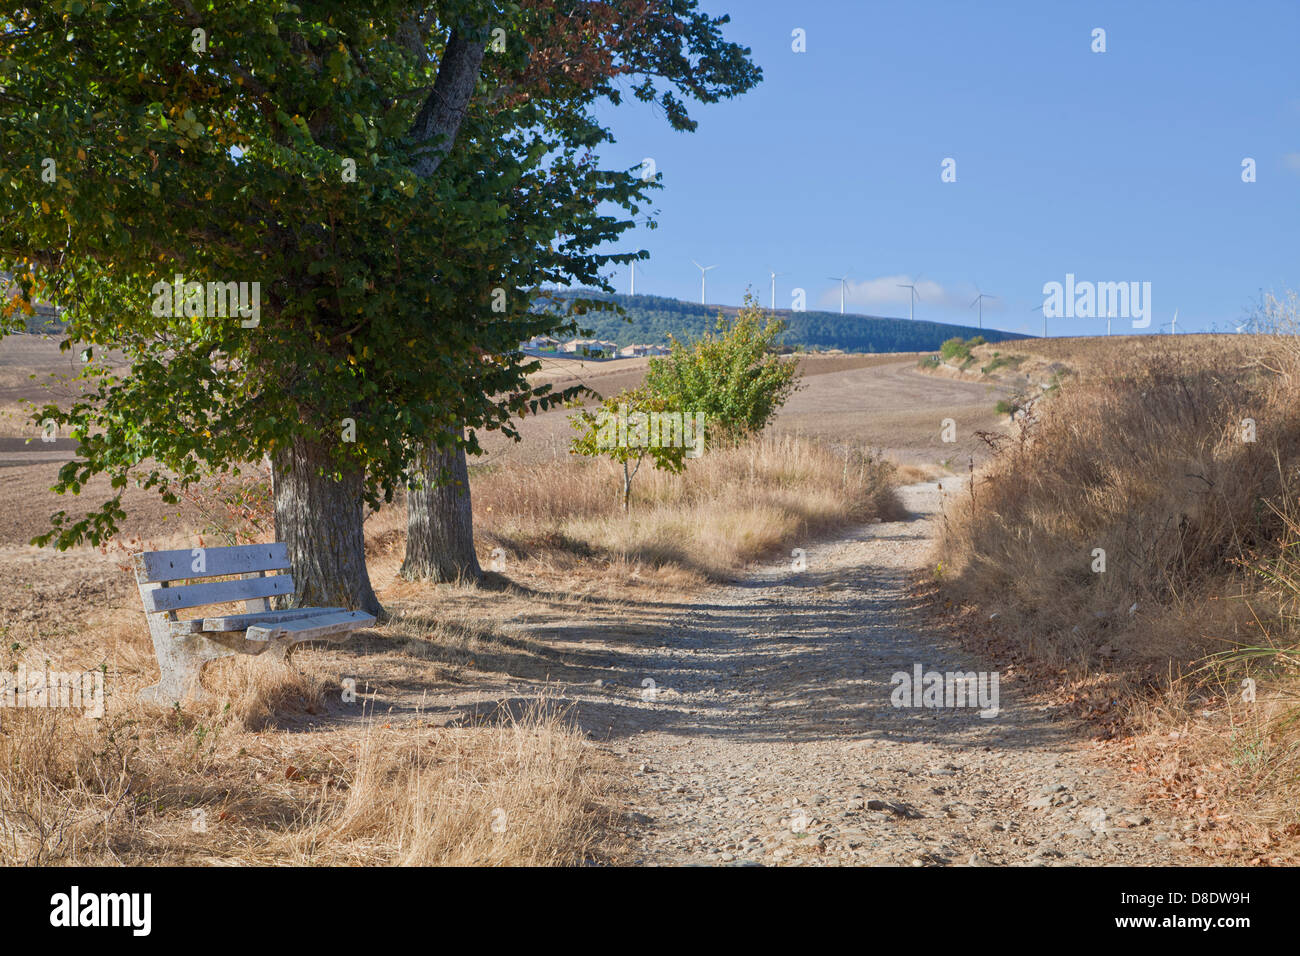 The Road to Santiago de Compostella; The French Way up to the way to Alto de Perdon, near Pamplona Spain. A pilgrimage - Stock Image